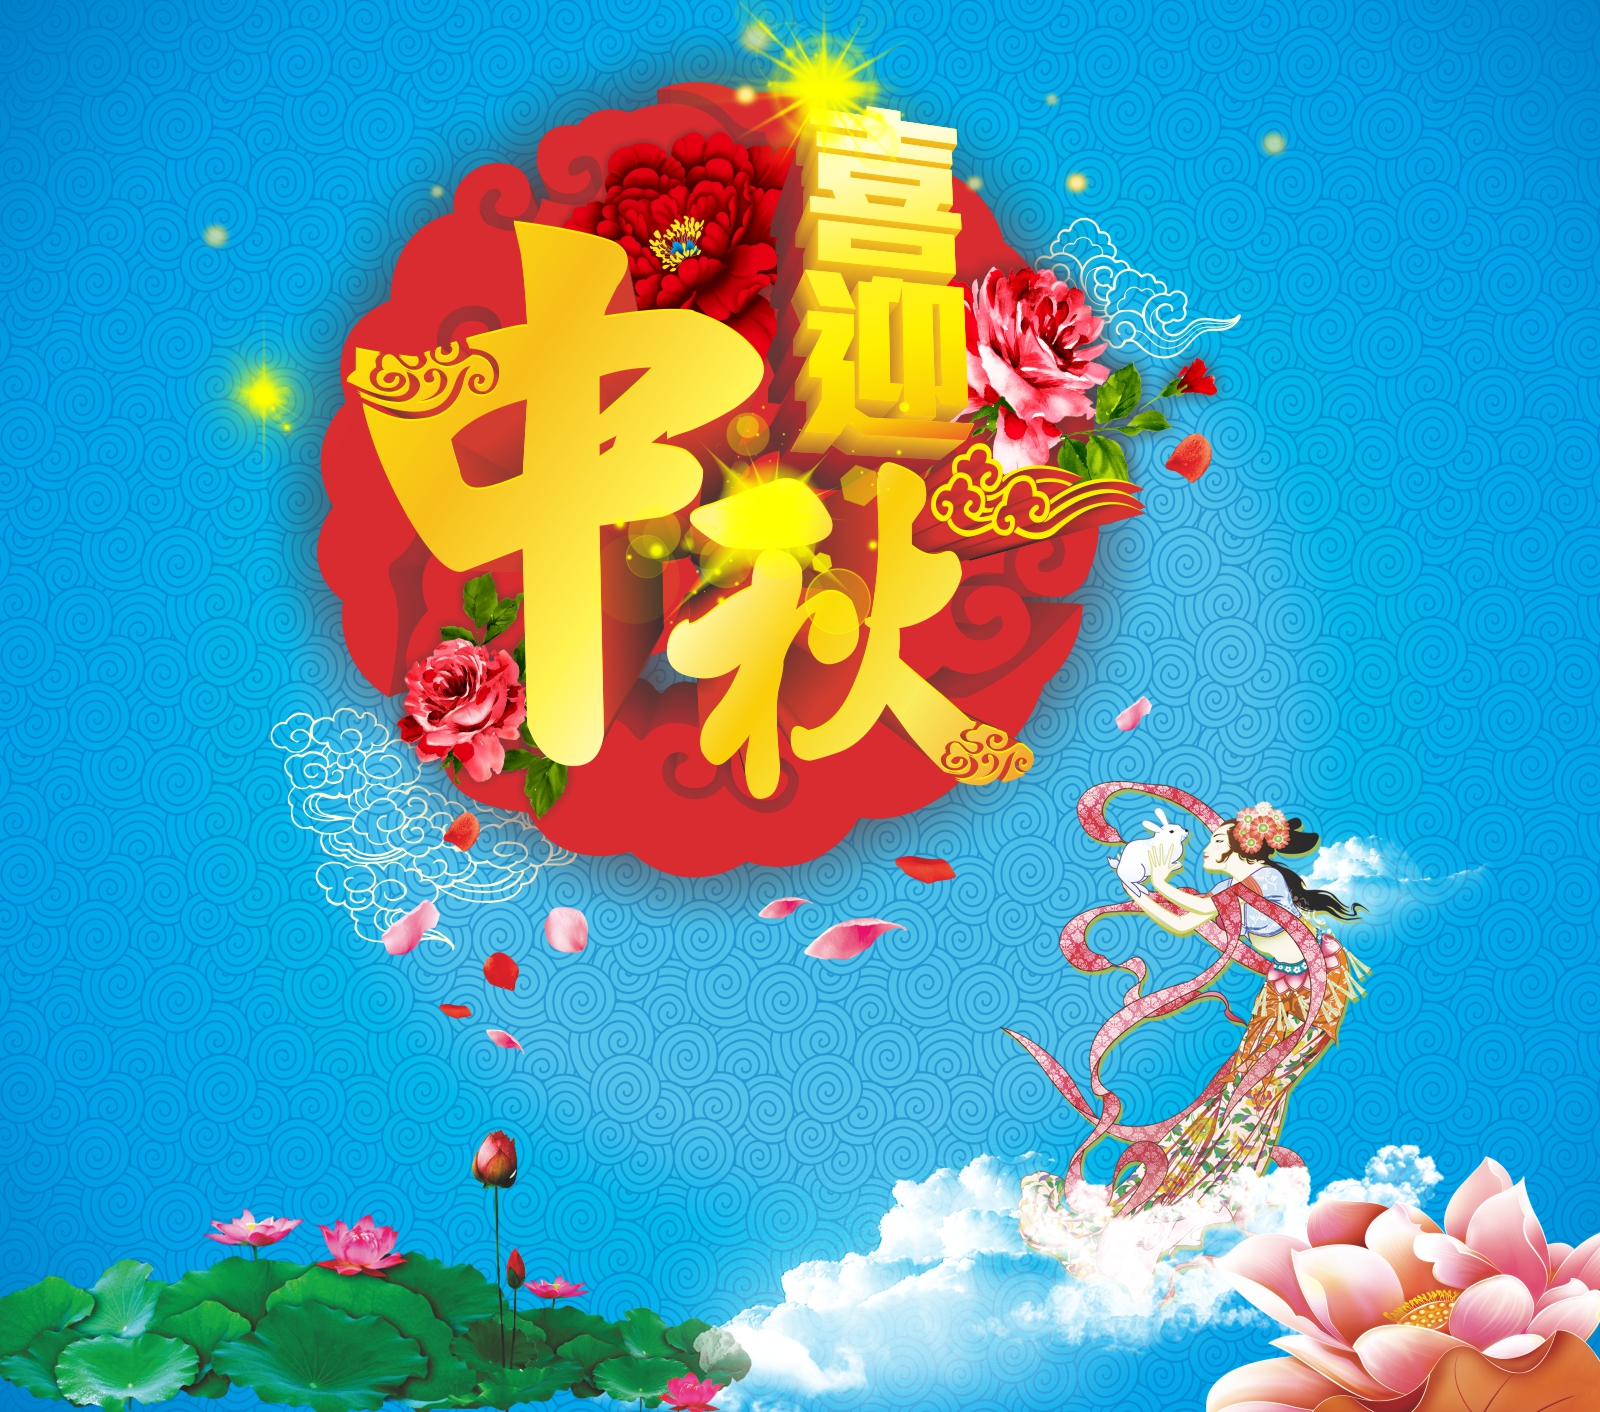 Mid - Autumn Festival theme poster design CorelDRAW Vectors CDR Free Download